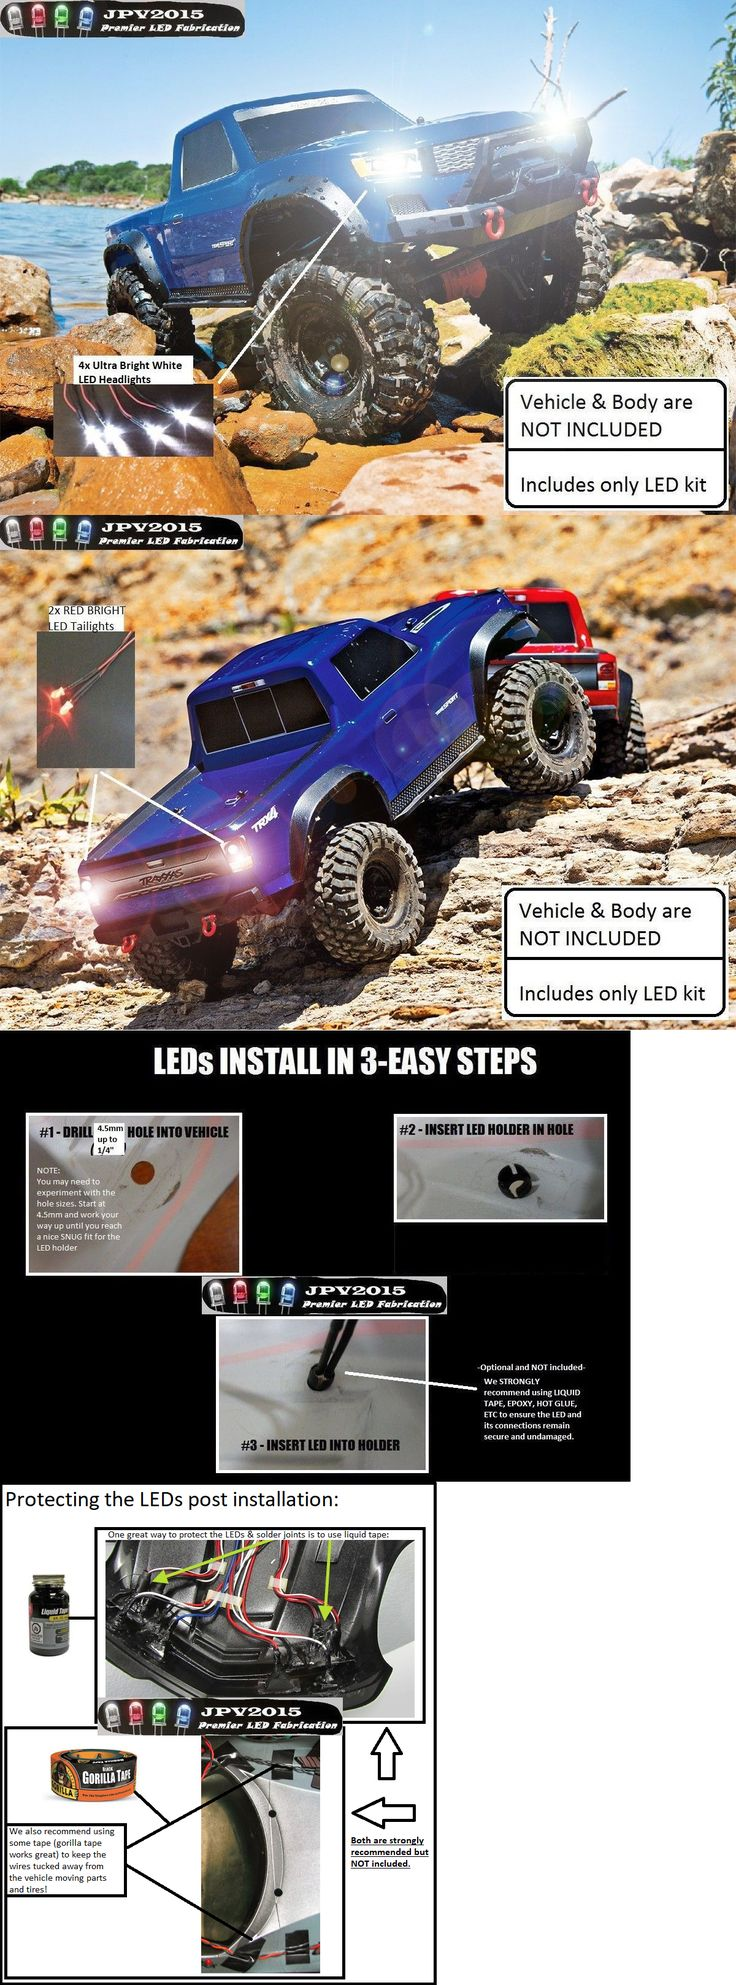 Lighting and Lamps 182177 Traxxas Trx4 Sport Trx4 Led